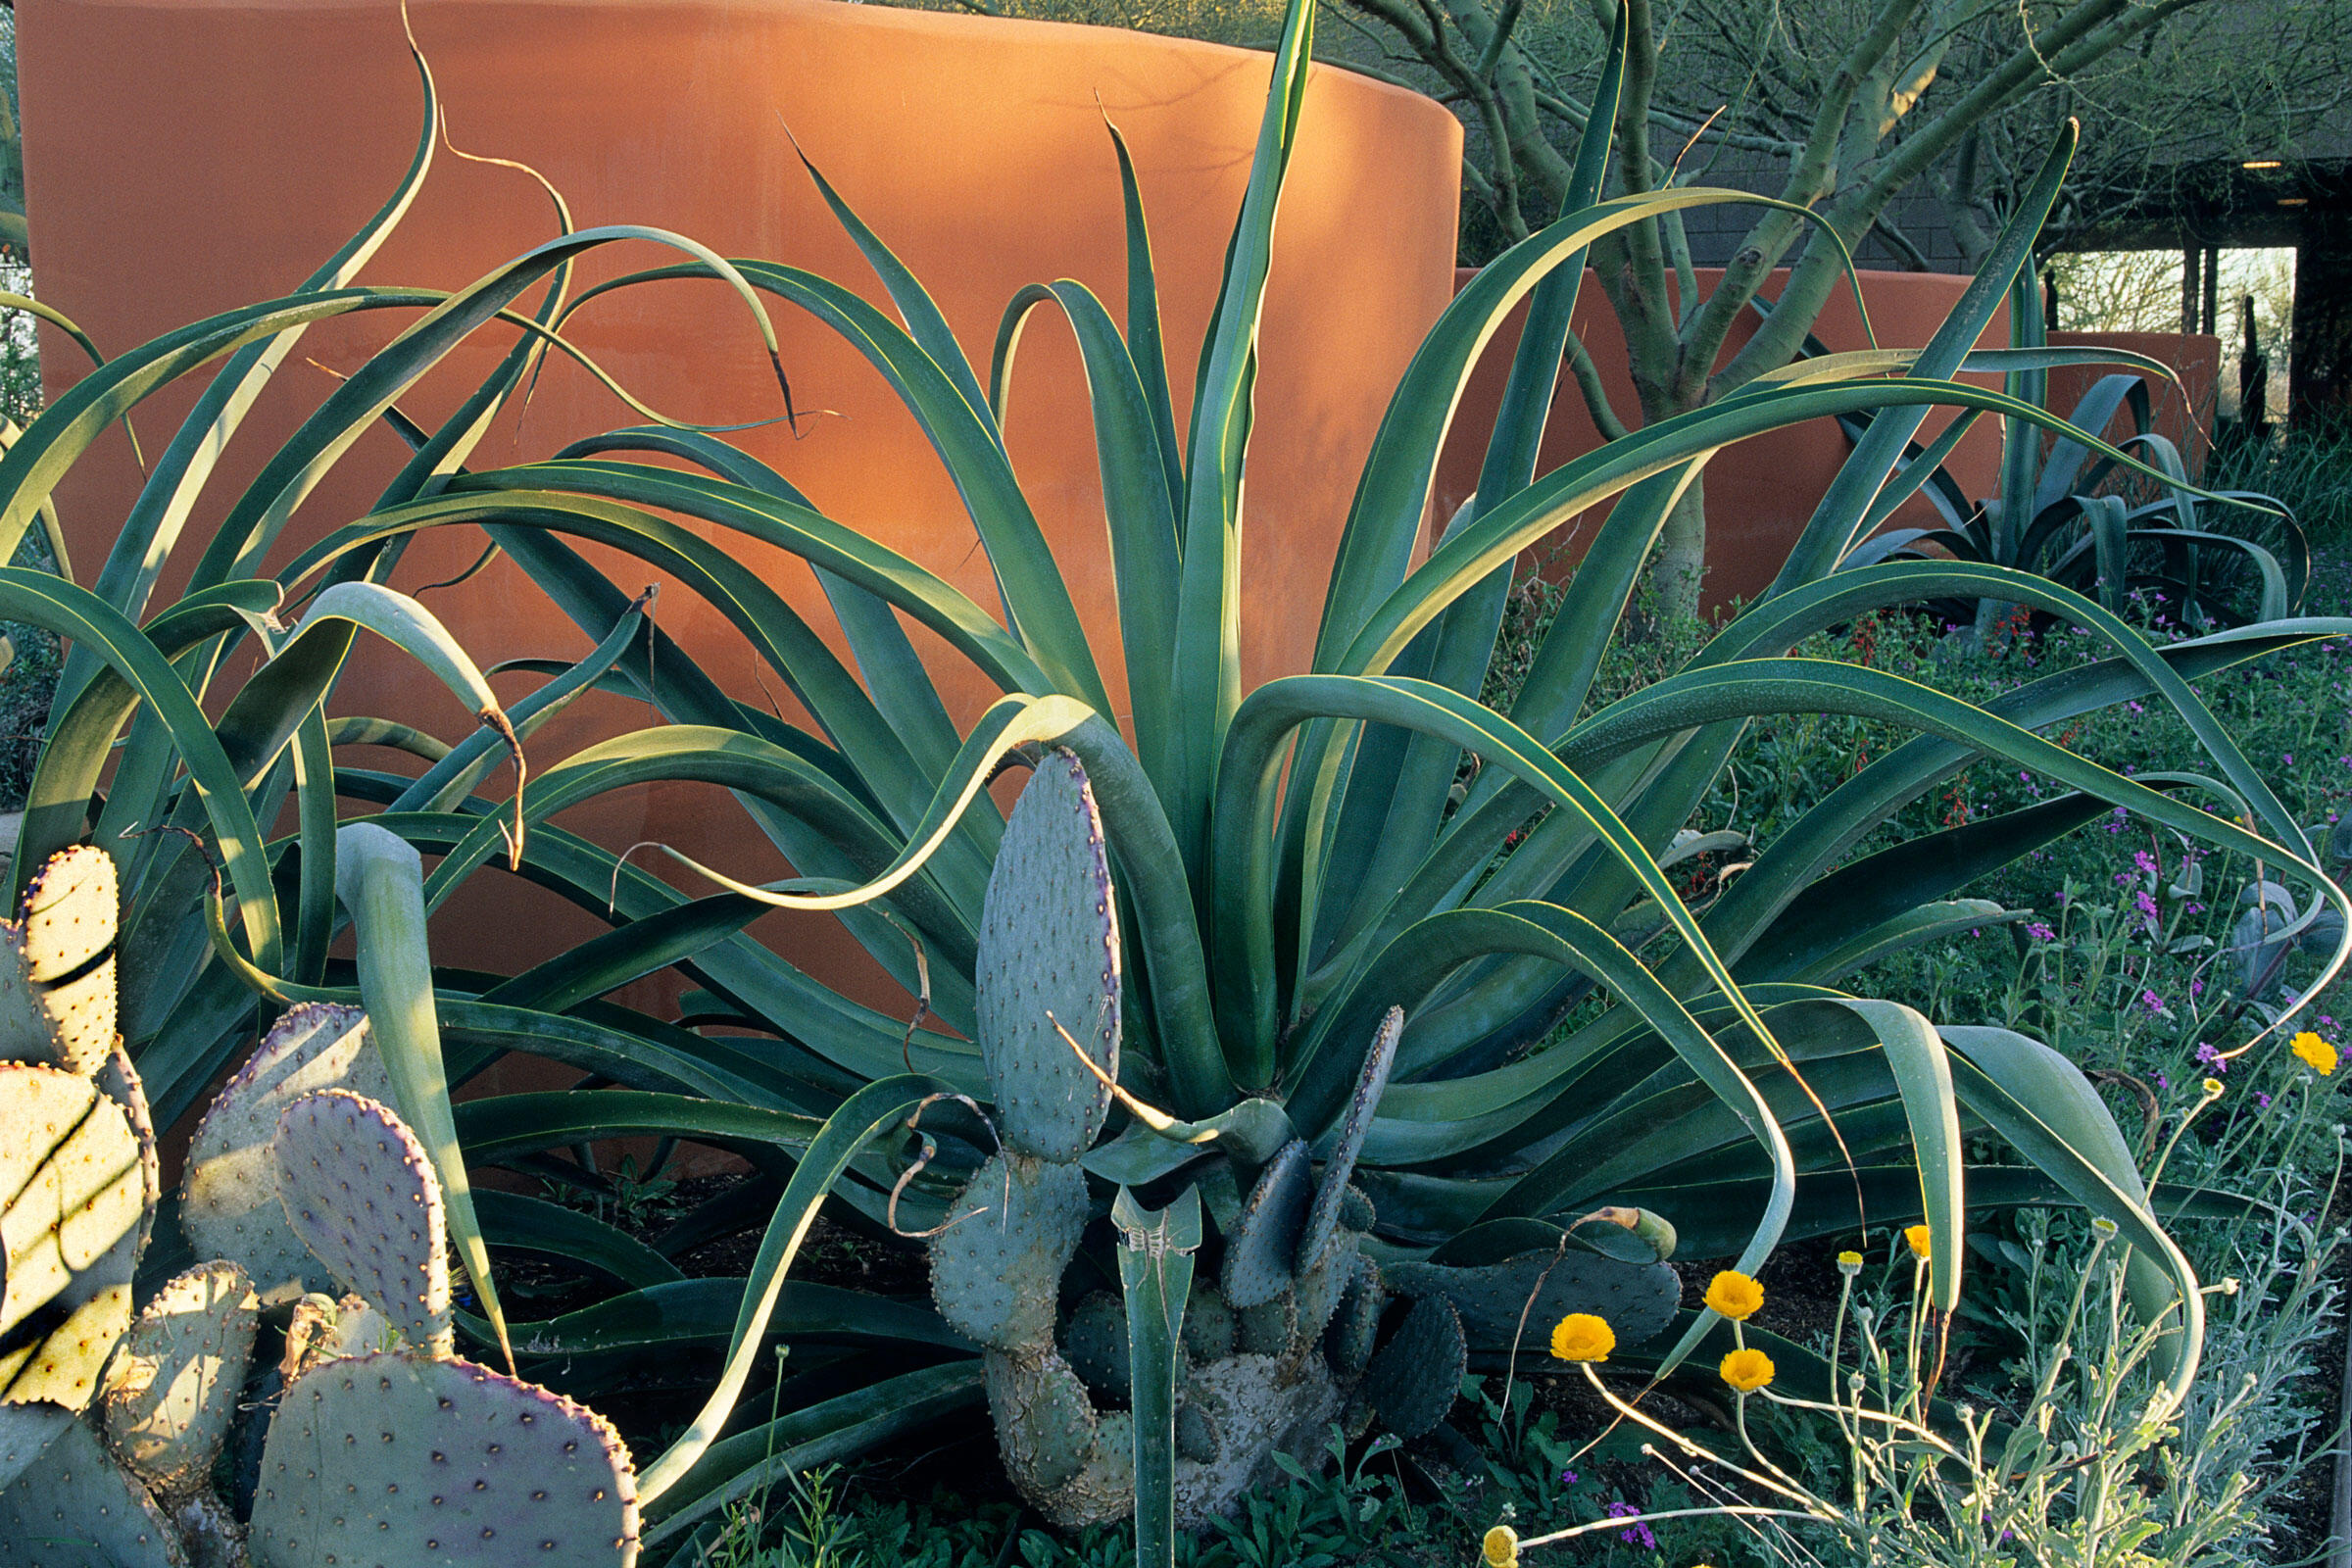 """This """"Arid Zone Trees"""" landscape was designed by Steve Martino in Santa Fe, New Mexico. It holds cacti such as Octopus agave, prickly pear, and a species of Opuntia, along with desert marigold and a palo verde tree. Charles Mann"""